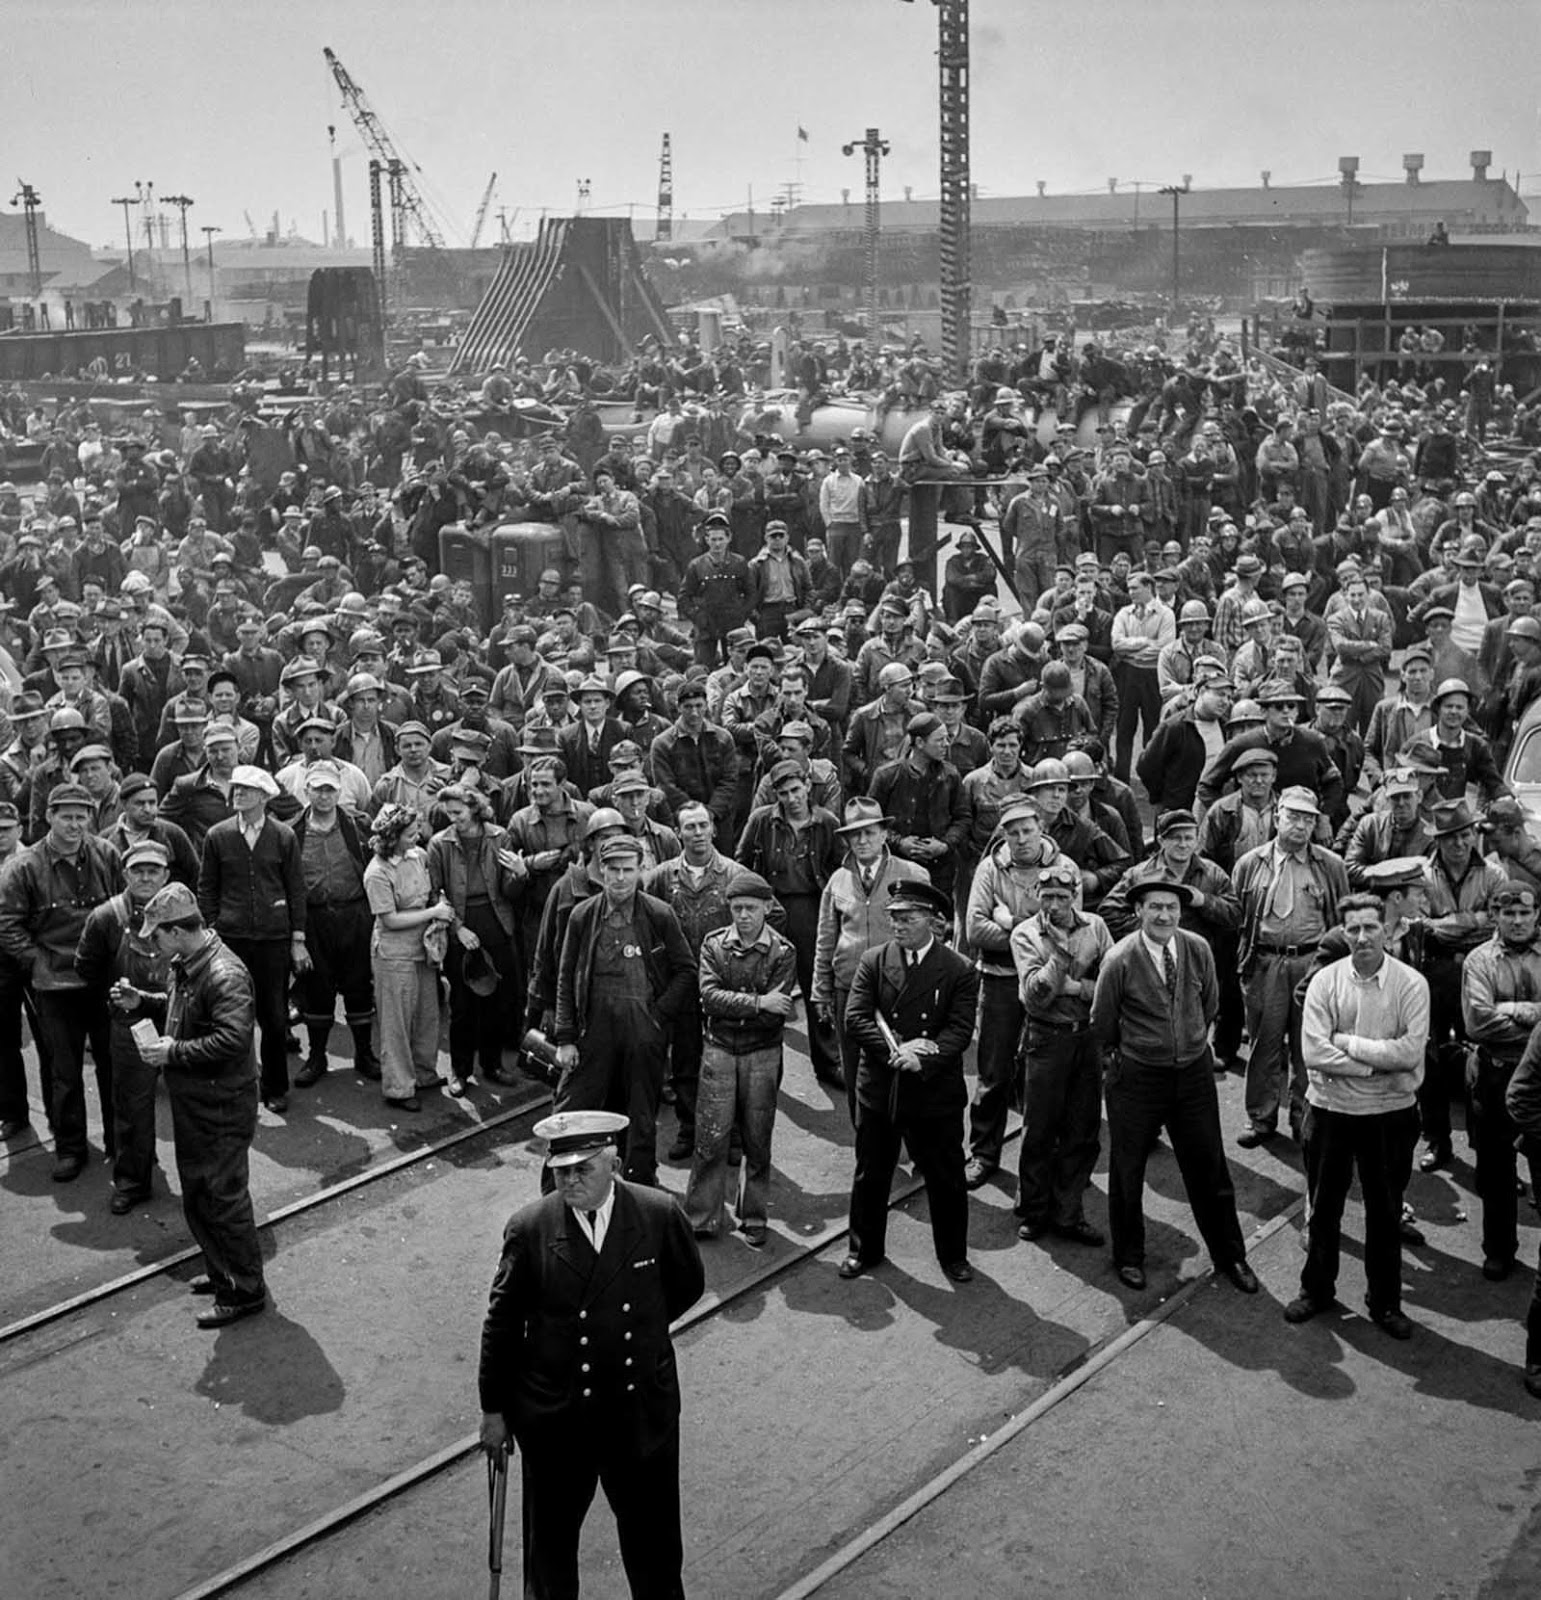 Workers gather for a ship launching ceremony.